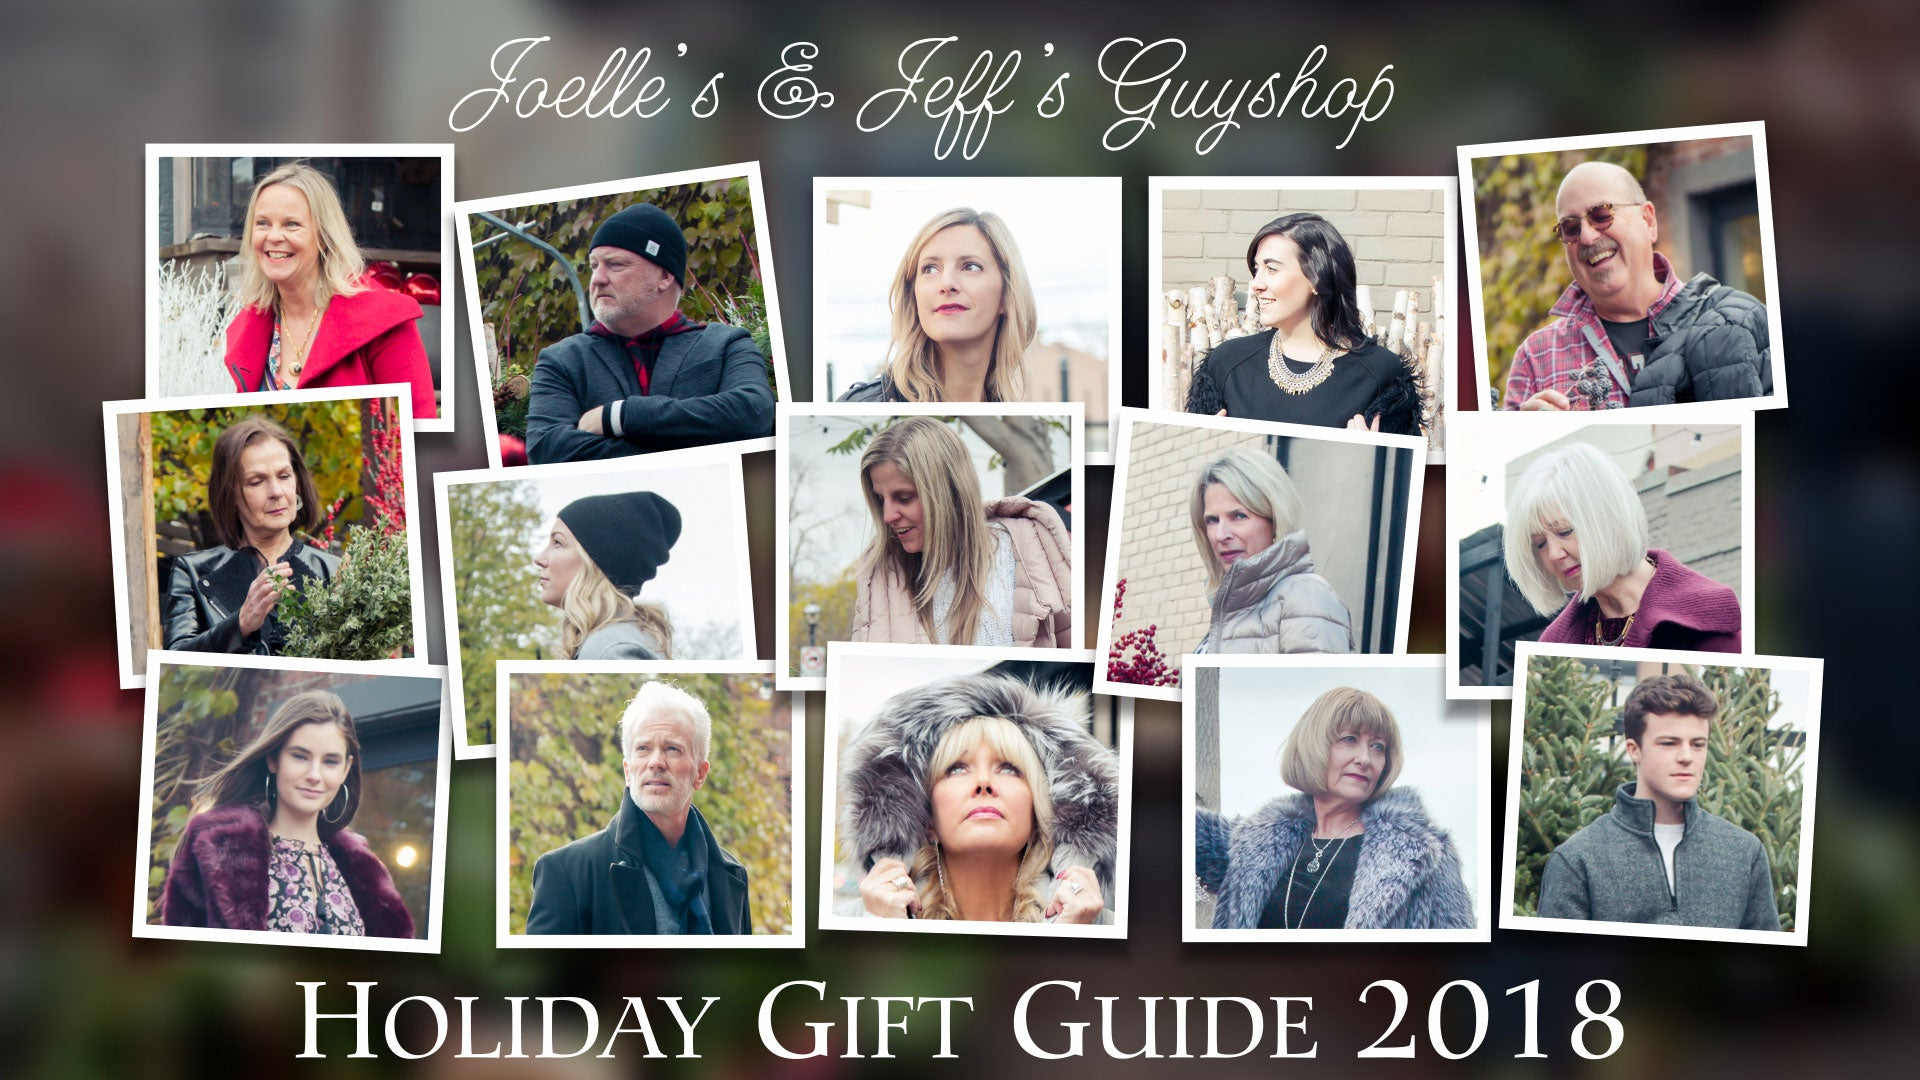 Joelle's and Jeff's Guyshop Holiday Gift Guide 2018